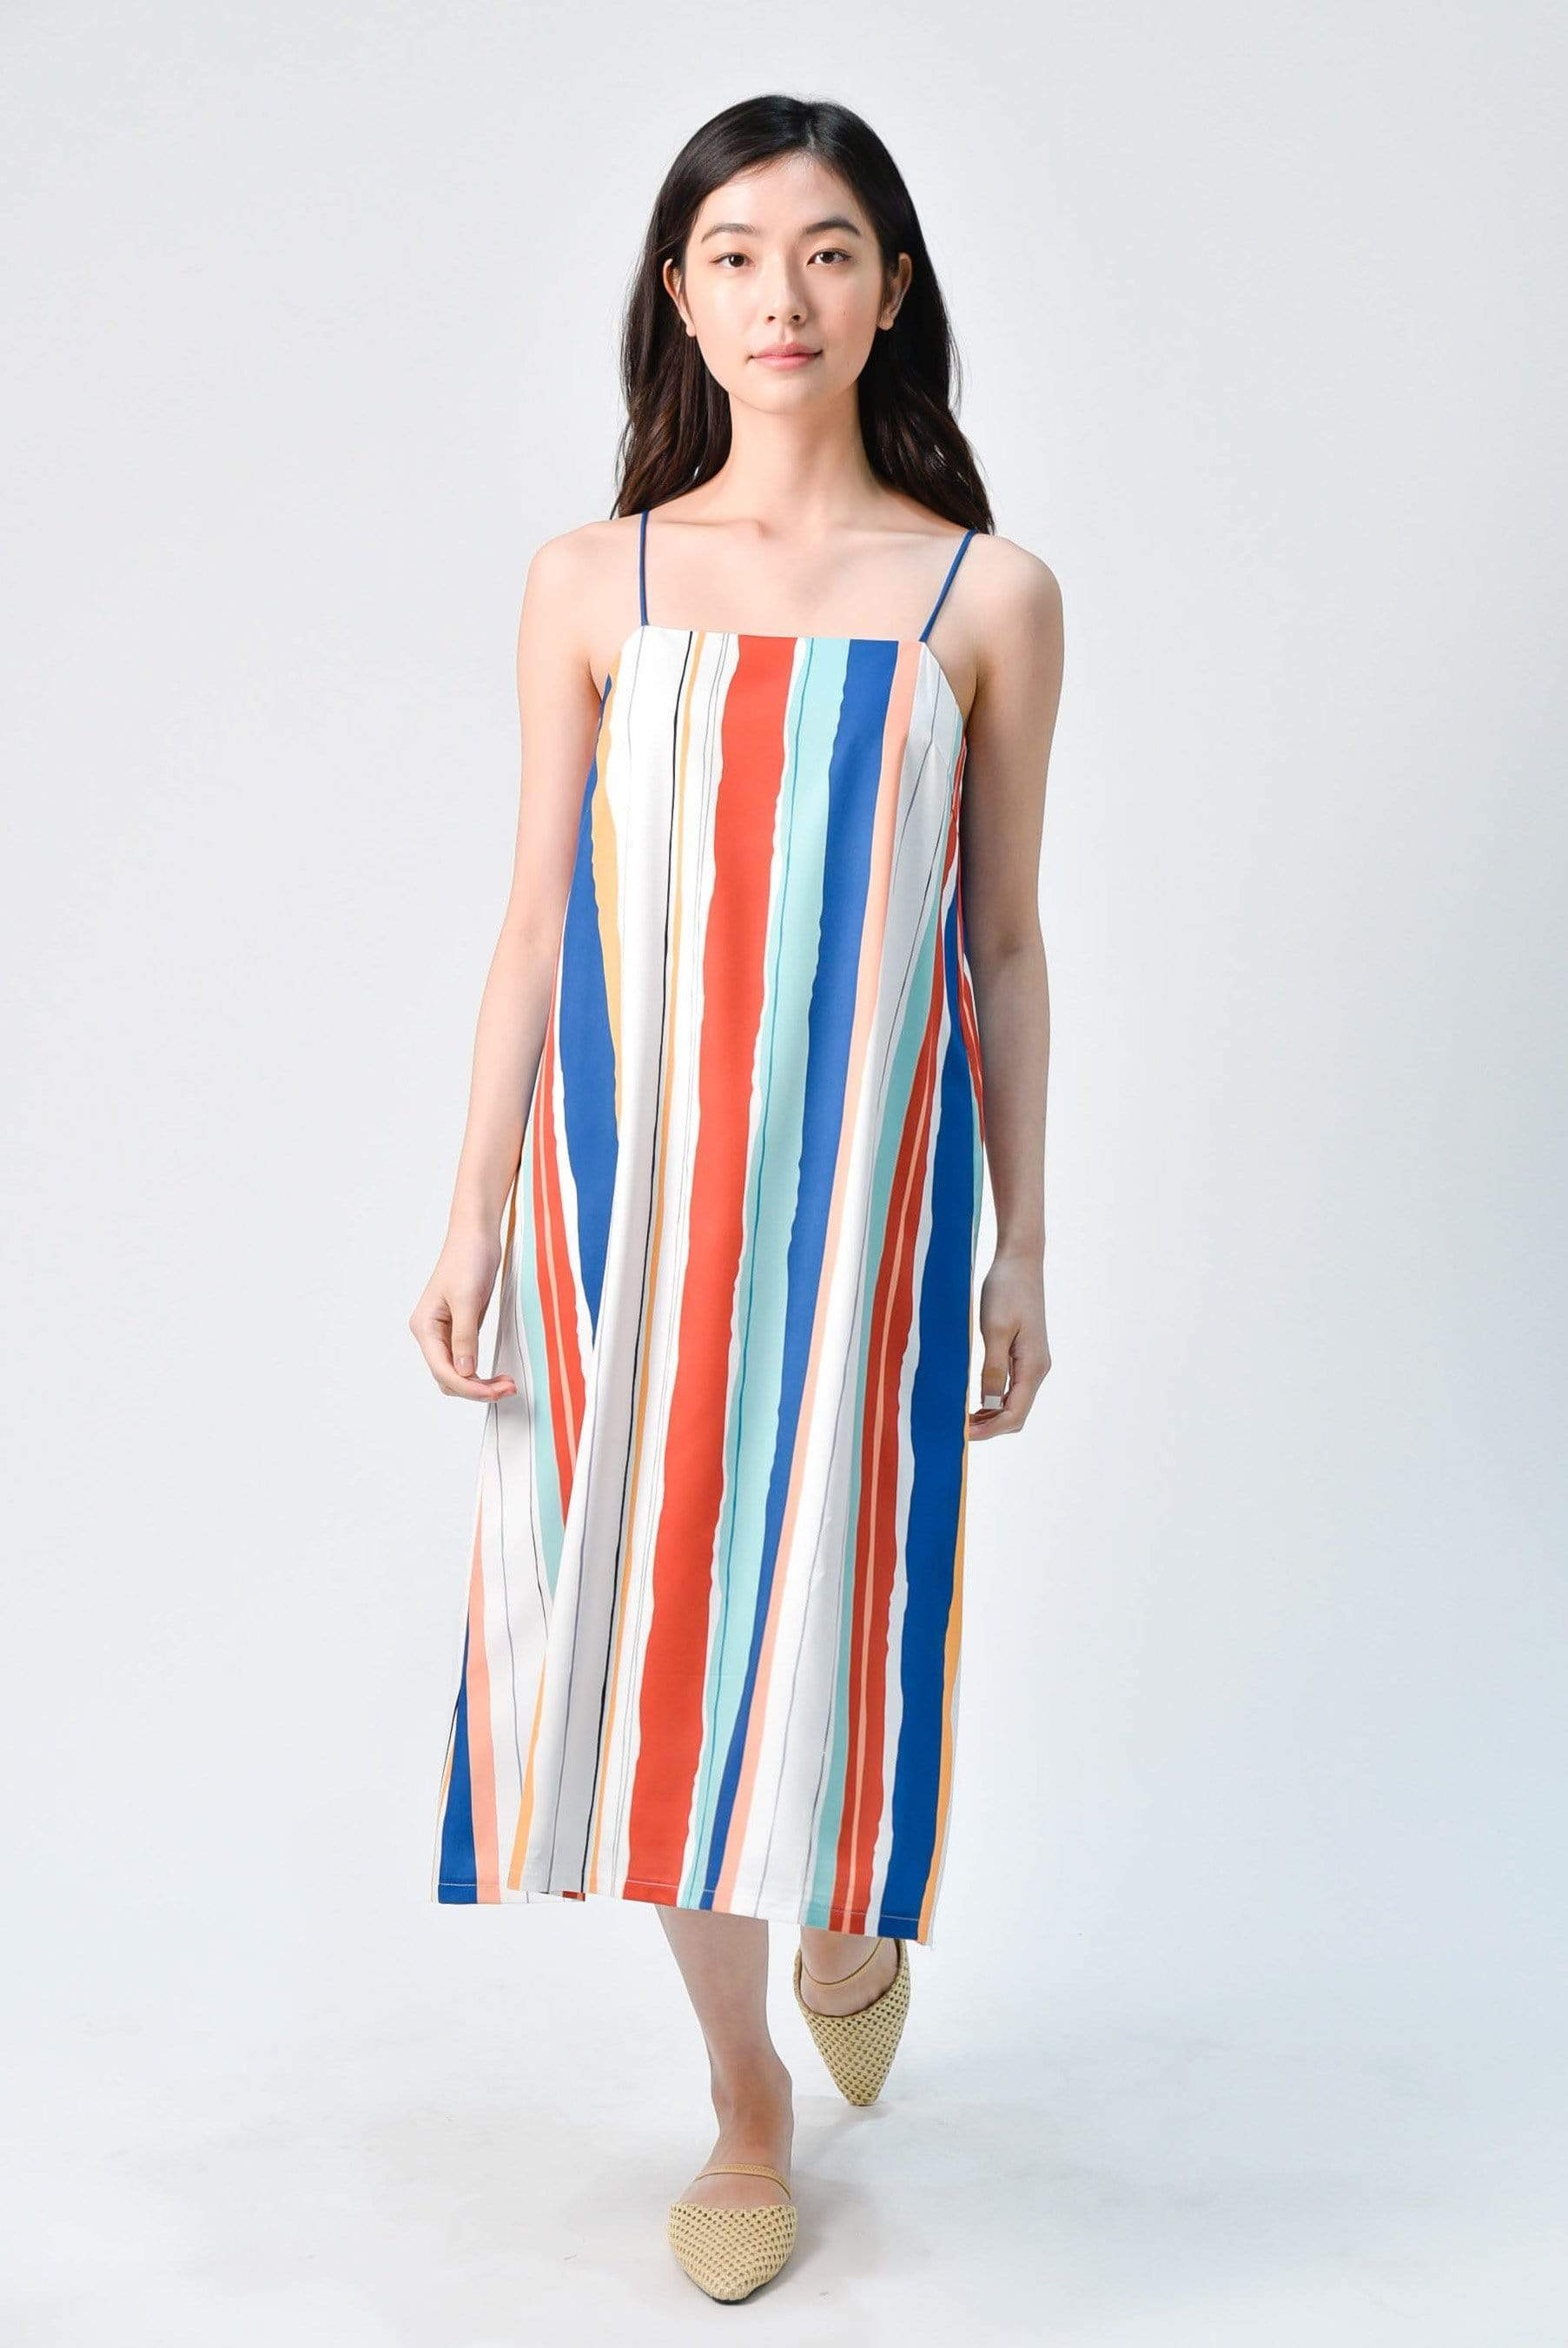 ELLA STRIPED TENT DRESS IN OCEAN BLUE